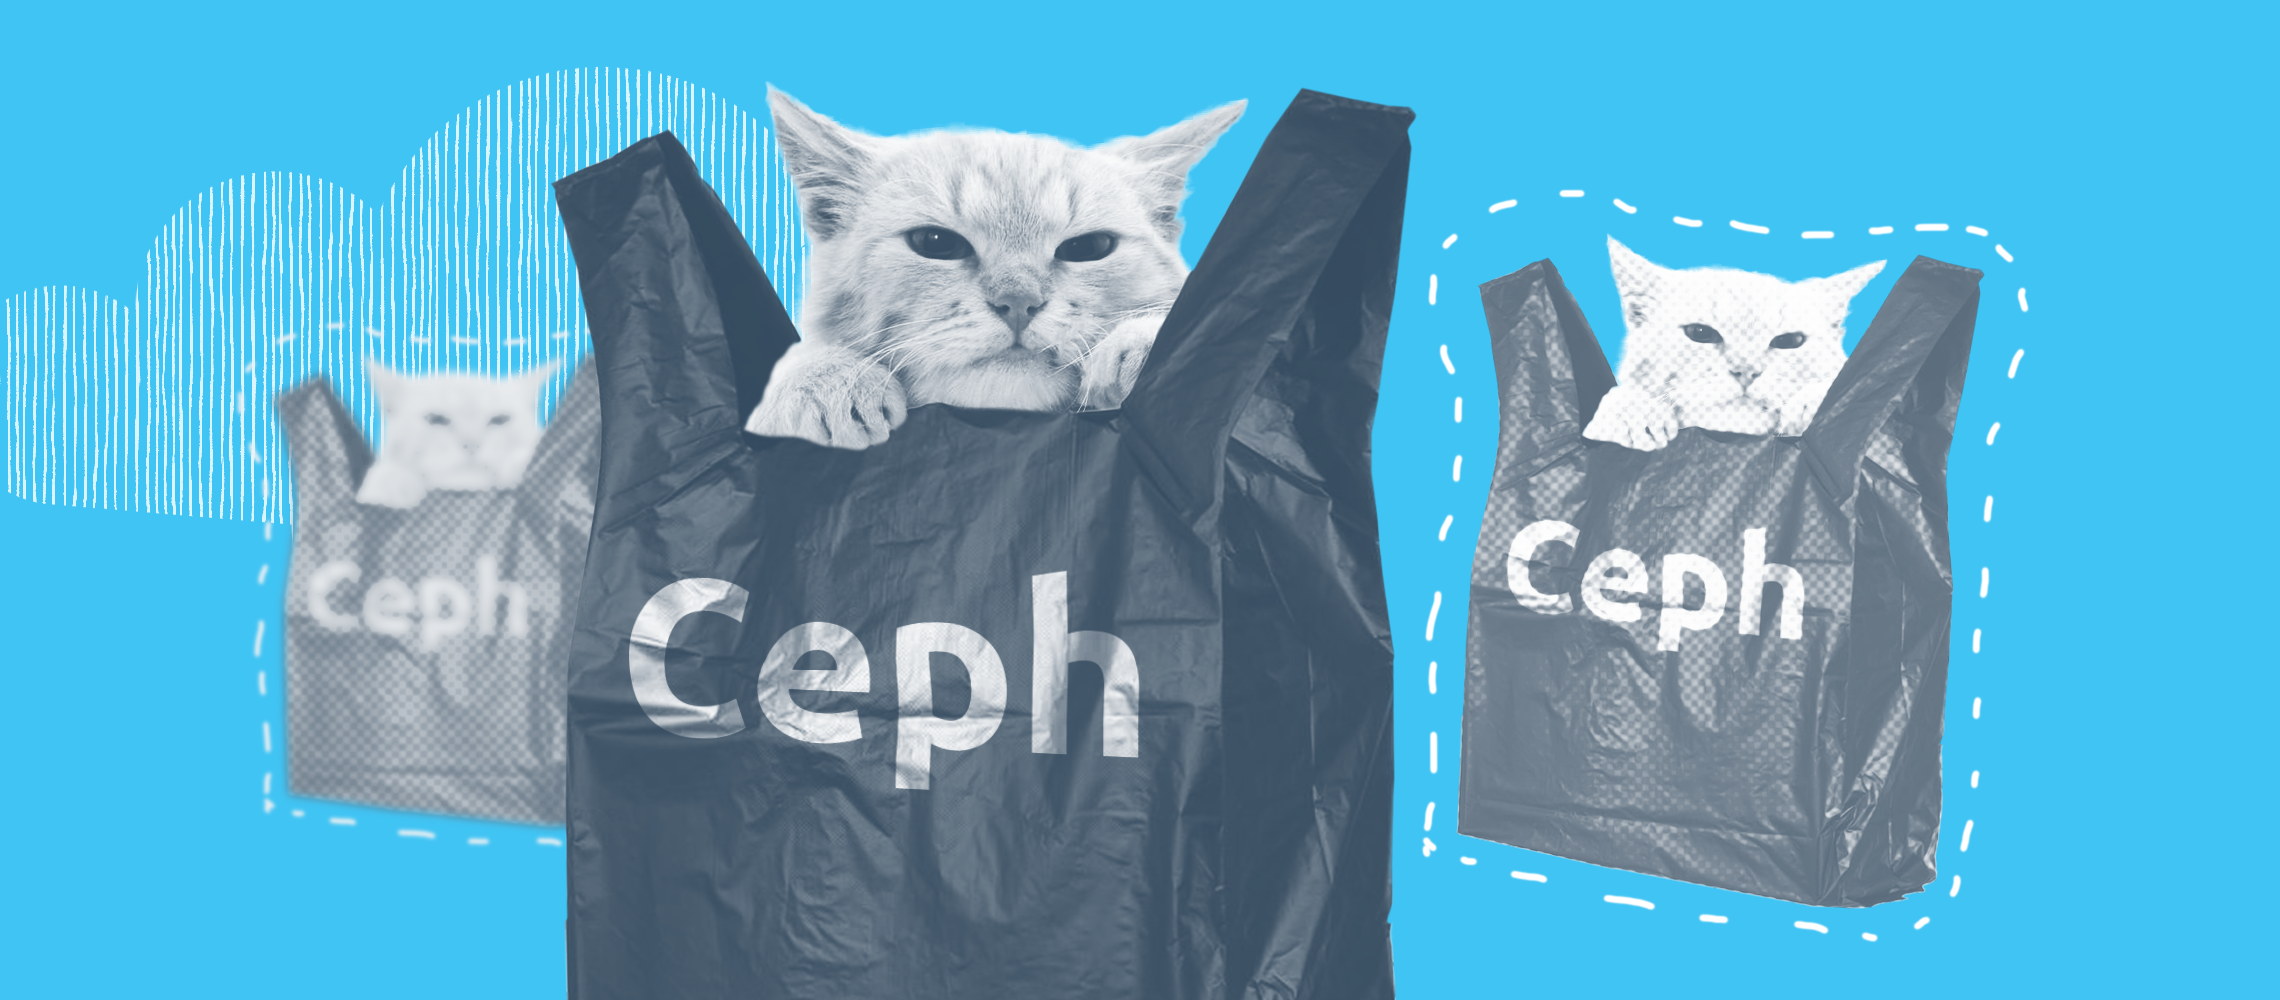 Ceph-based budget storage without buying data storage systems